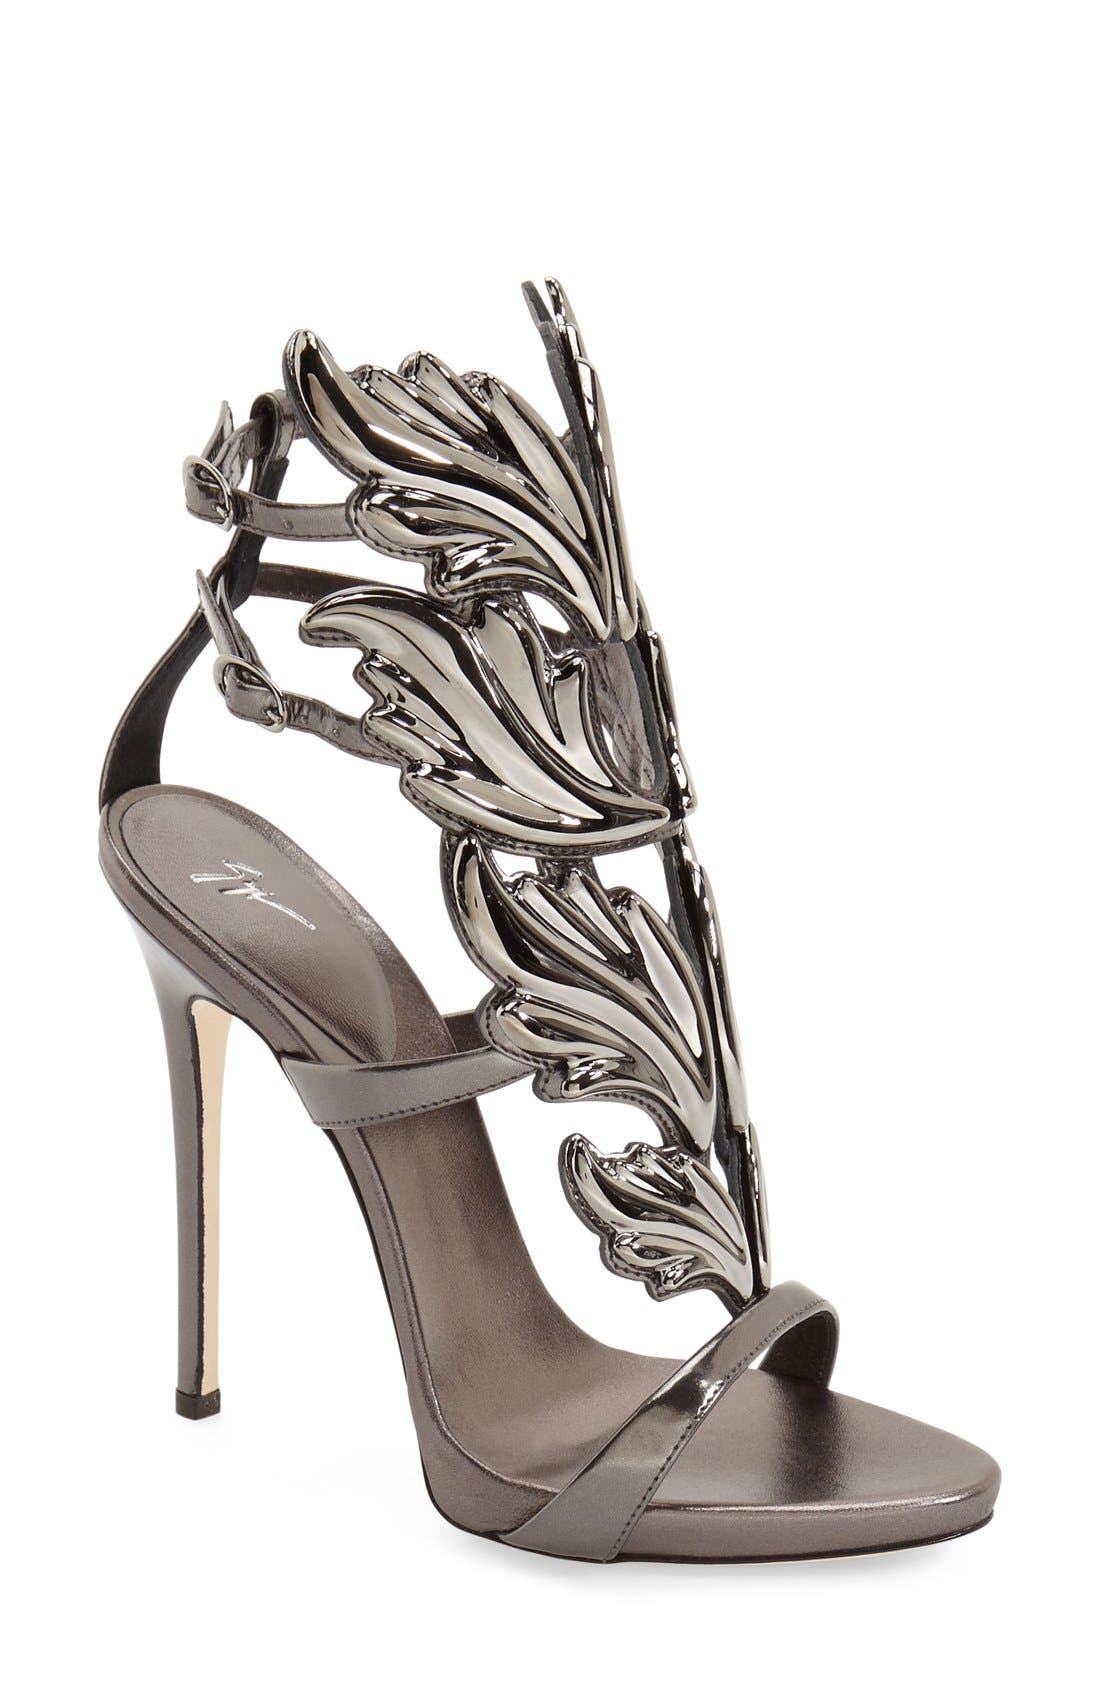 Alternate Image 1 Selected - Giuseppe Zanotti 'Cruel' Wing Sandal (Women) (Nordstrom Exclusive)